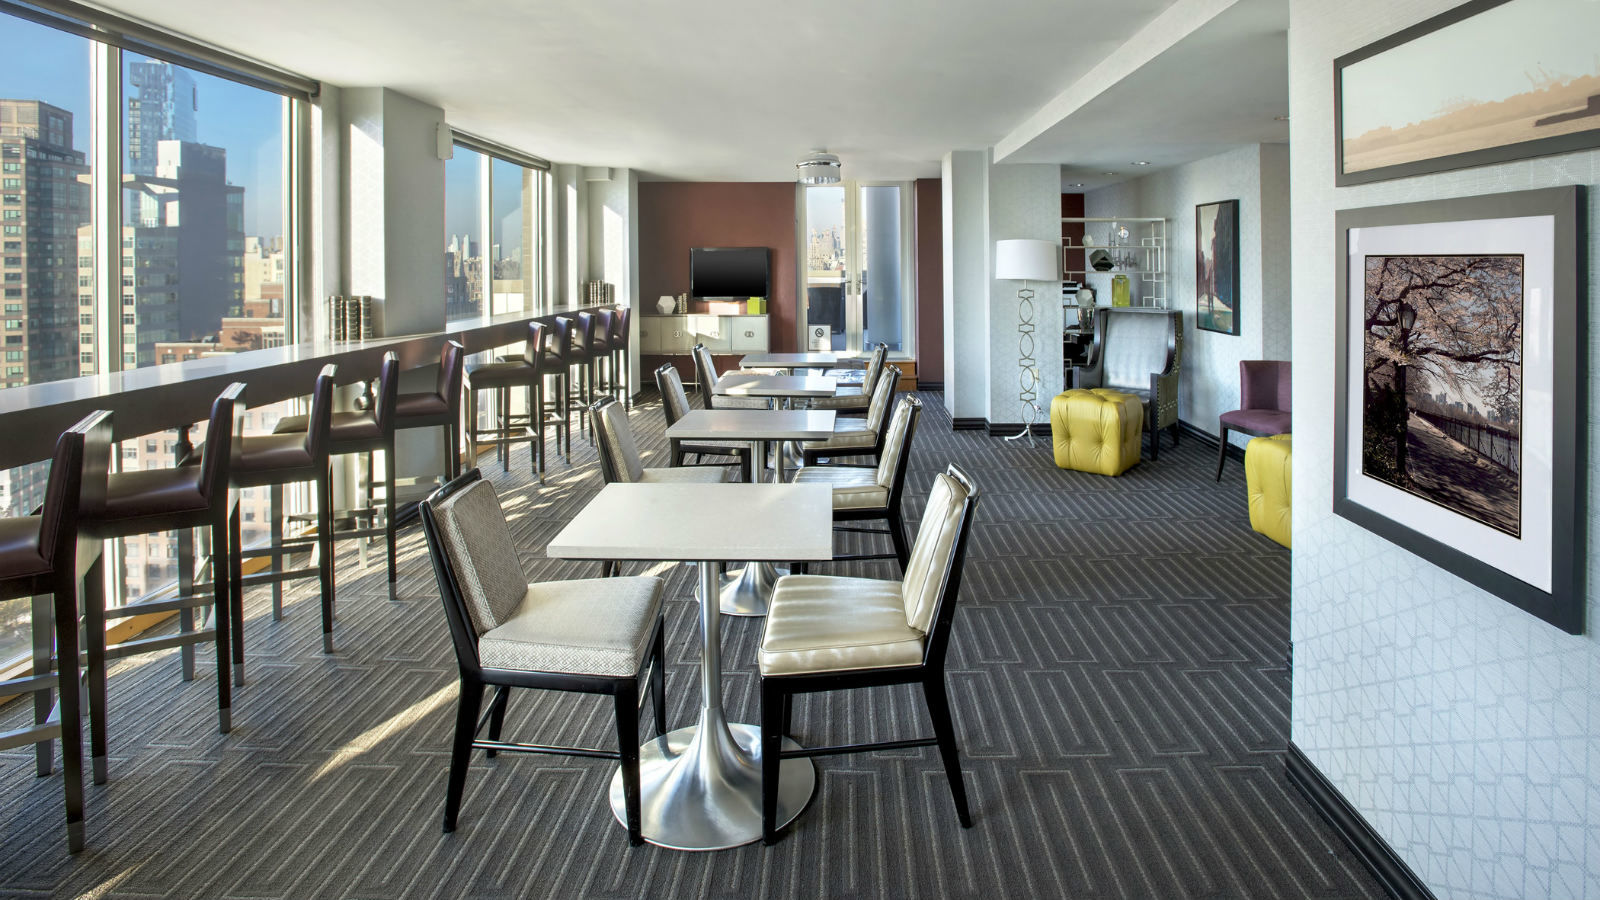 Hotels Near Tribeca Performing Arts Center - Sheraton Tribeca New York Hotel